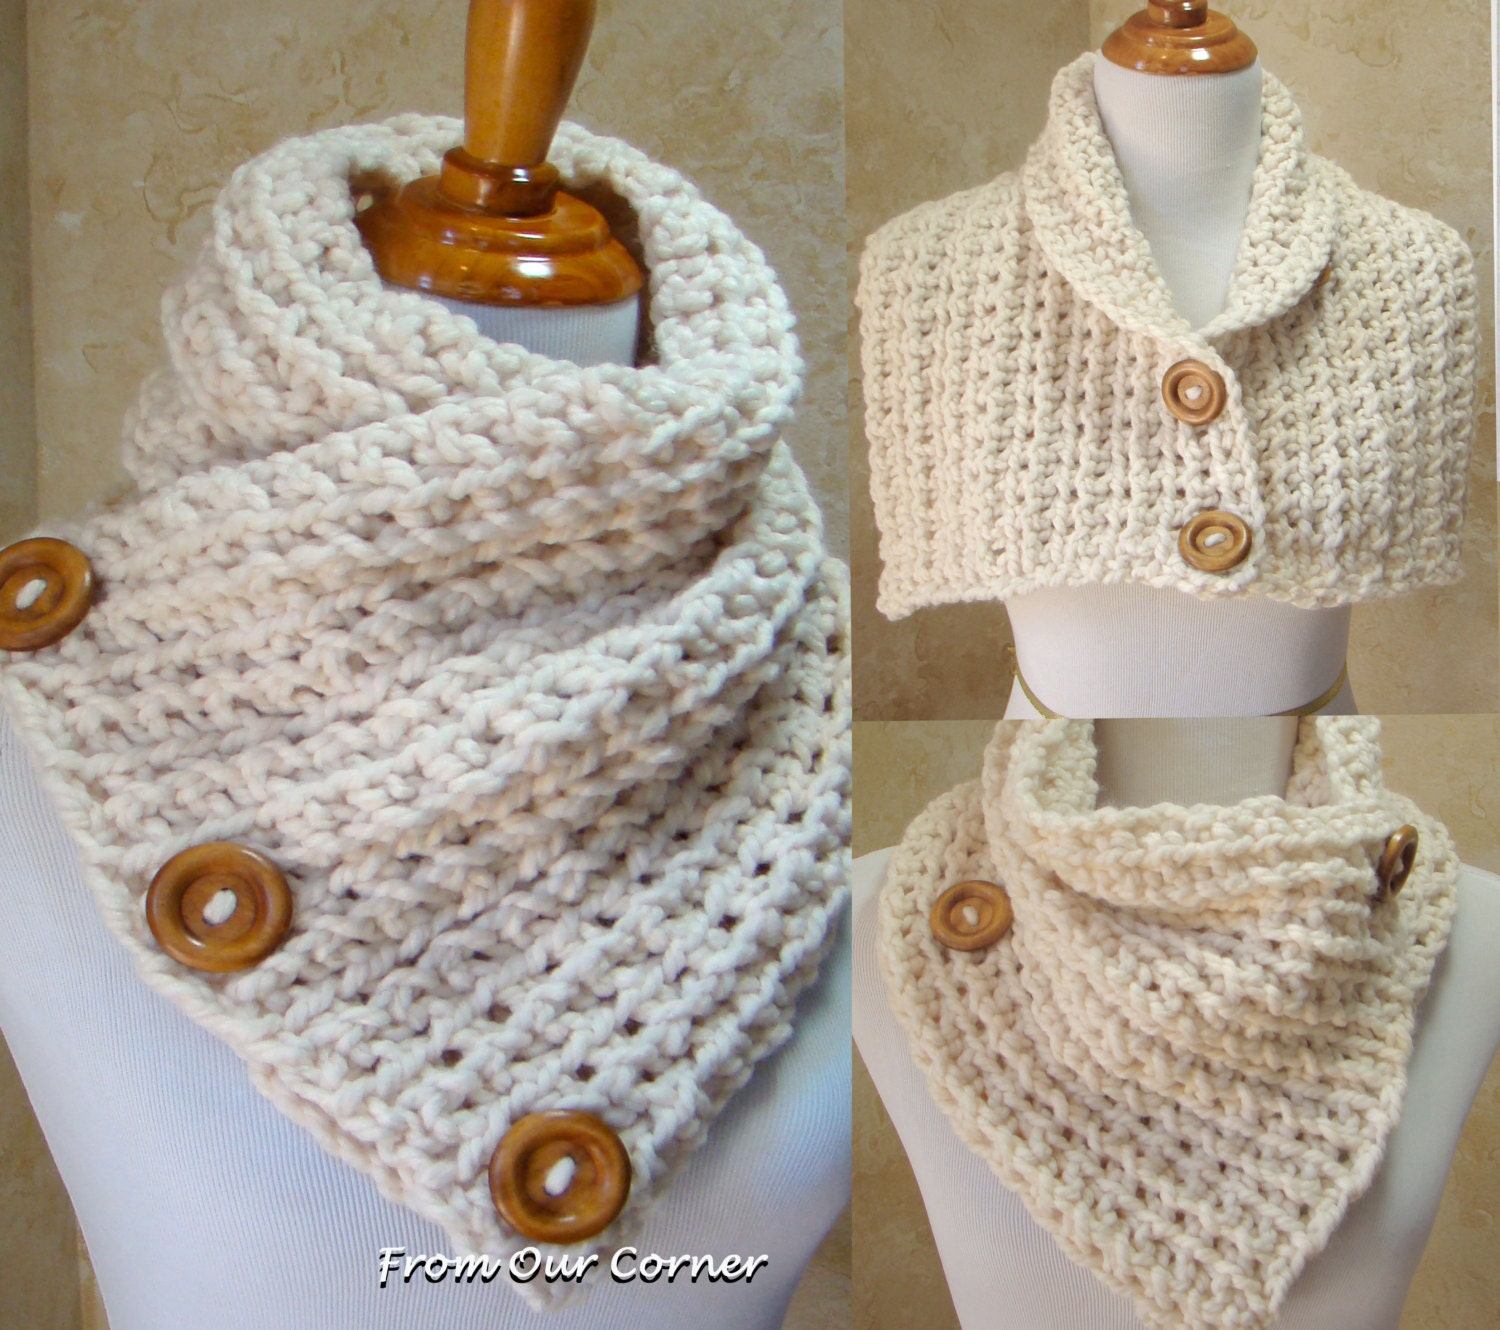 Crochet Pattern For Infinity Scarf With Buttons : 1000+ images about Handiwork - Crochet on Pinterest Boot ...